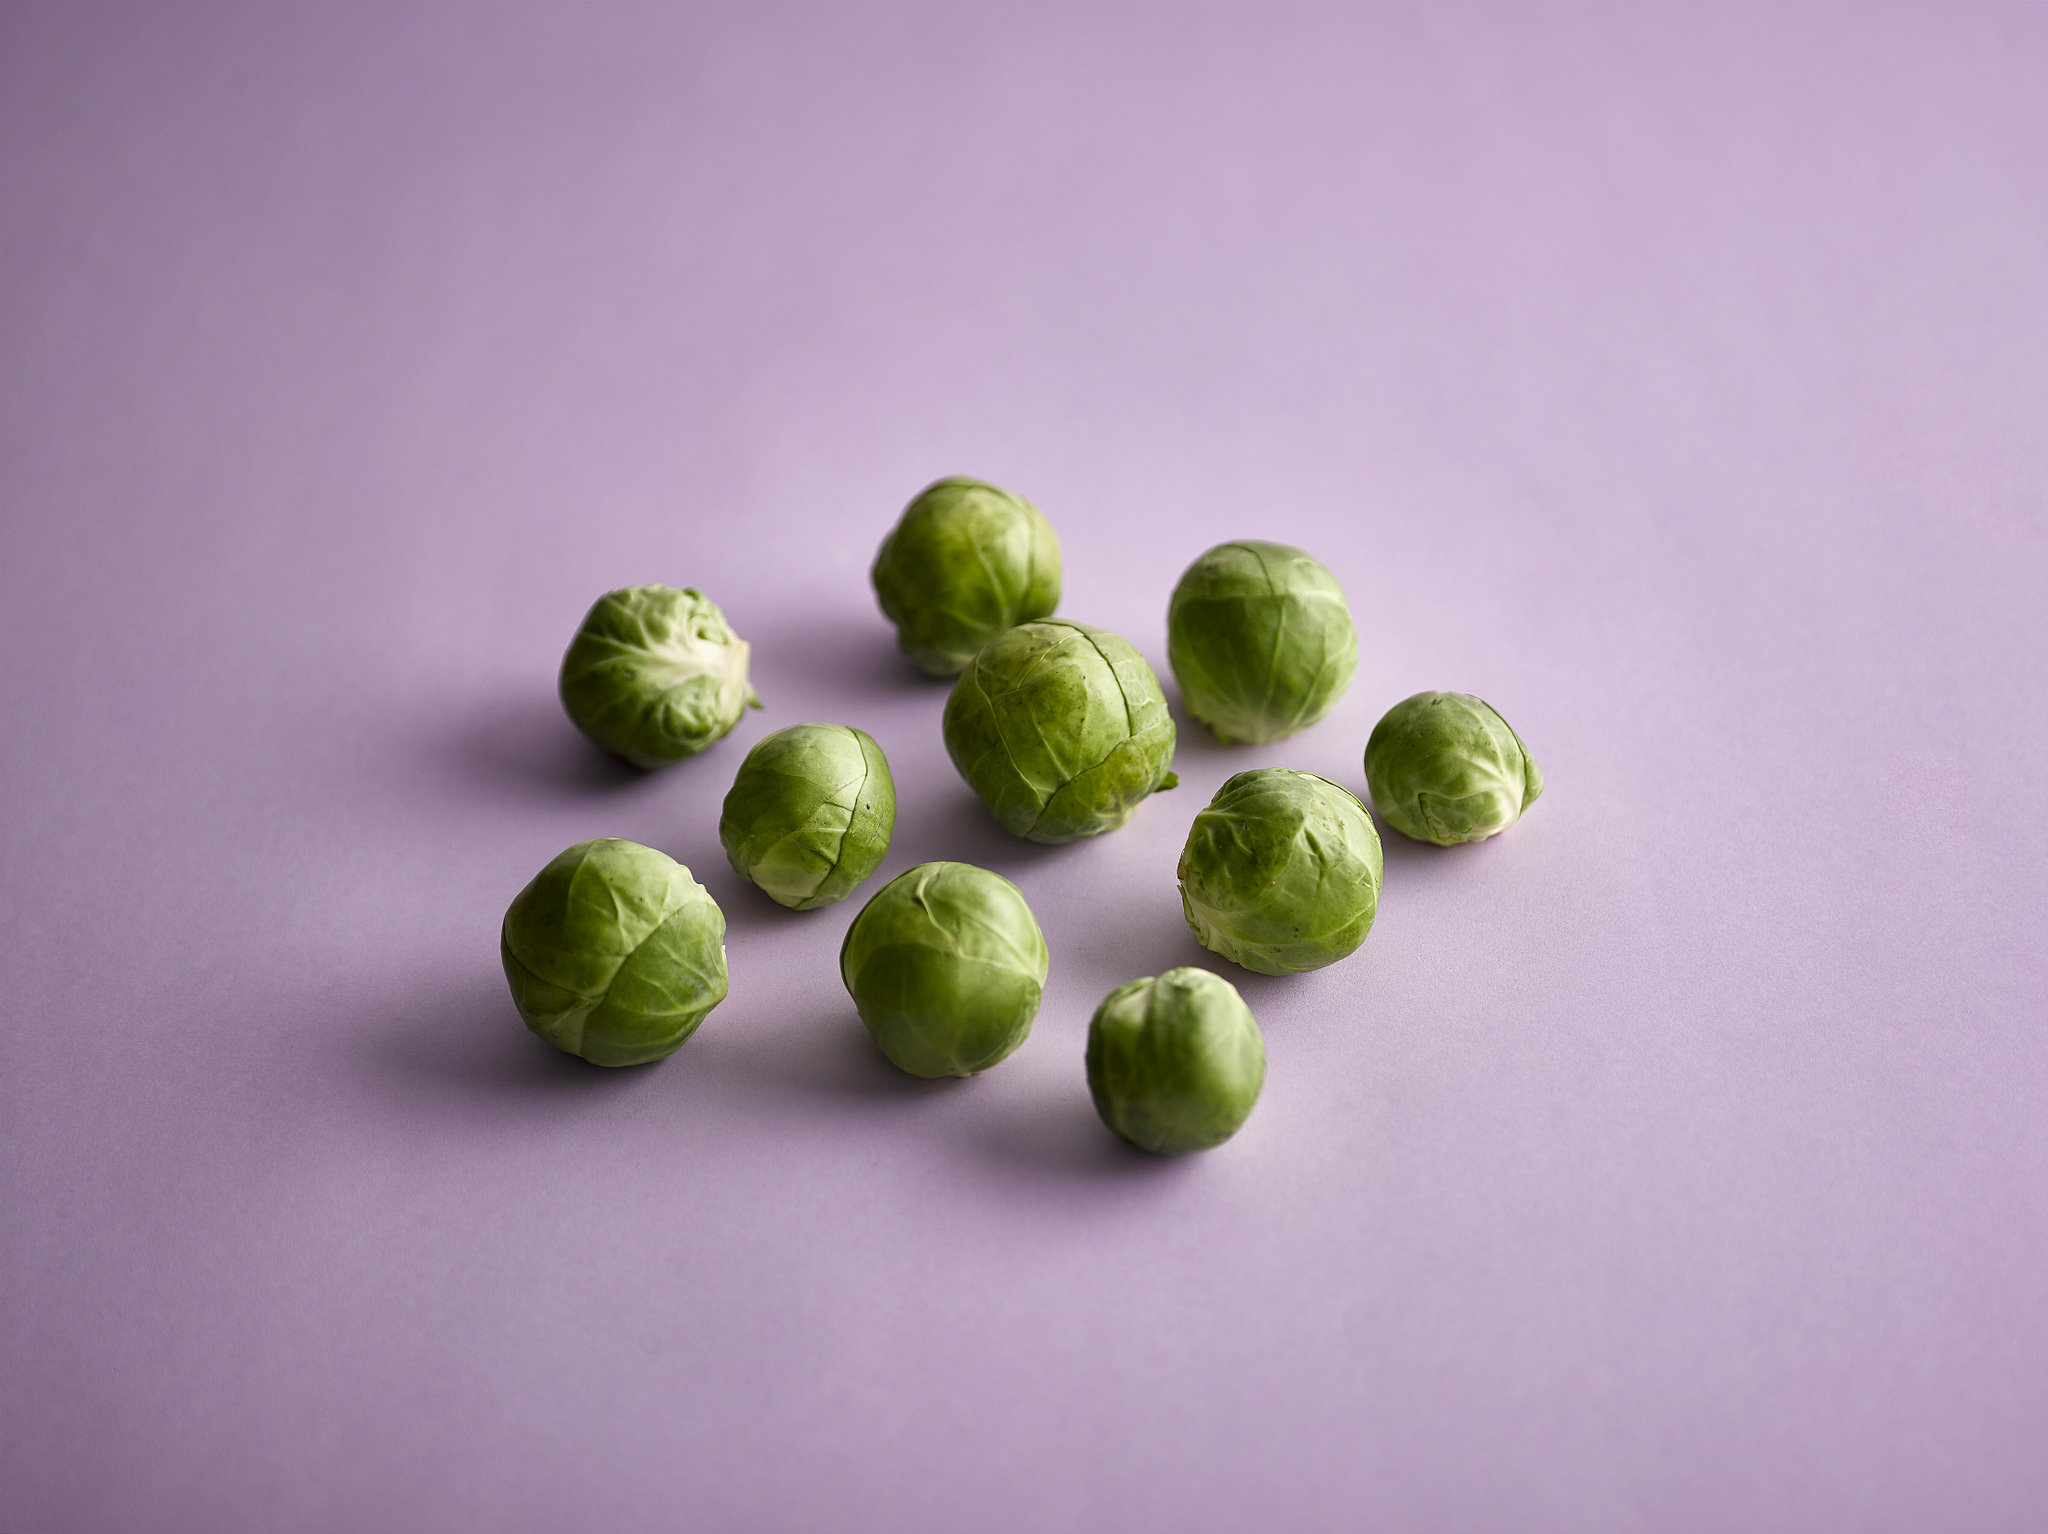 A bowl of sprouts